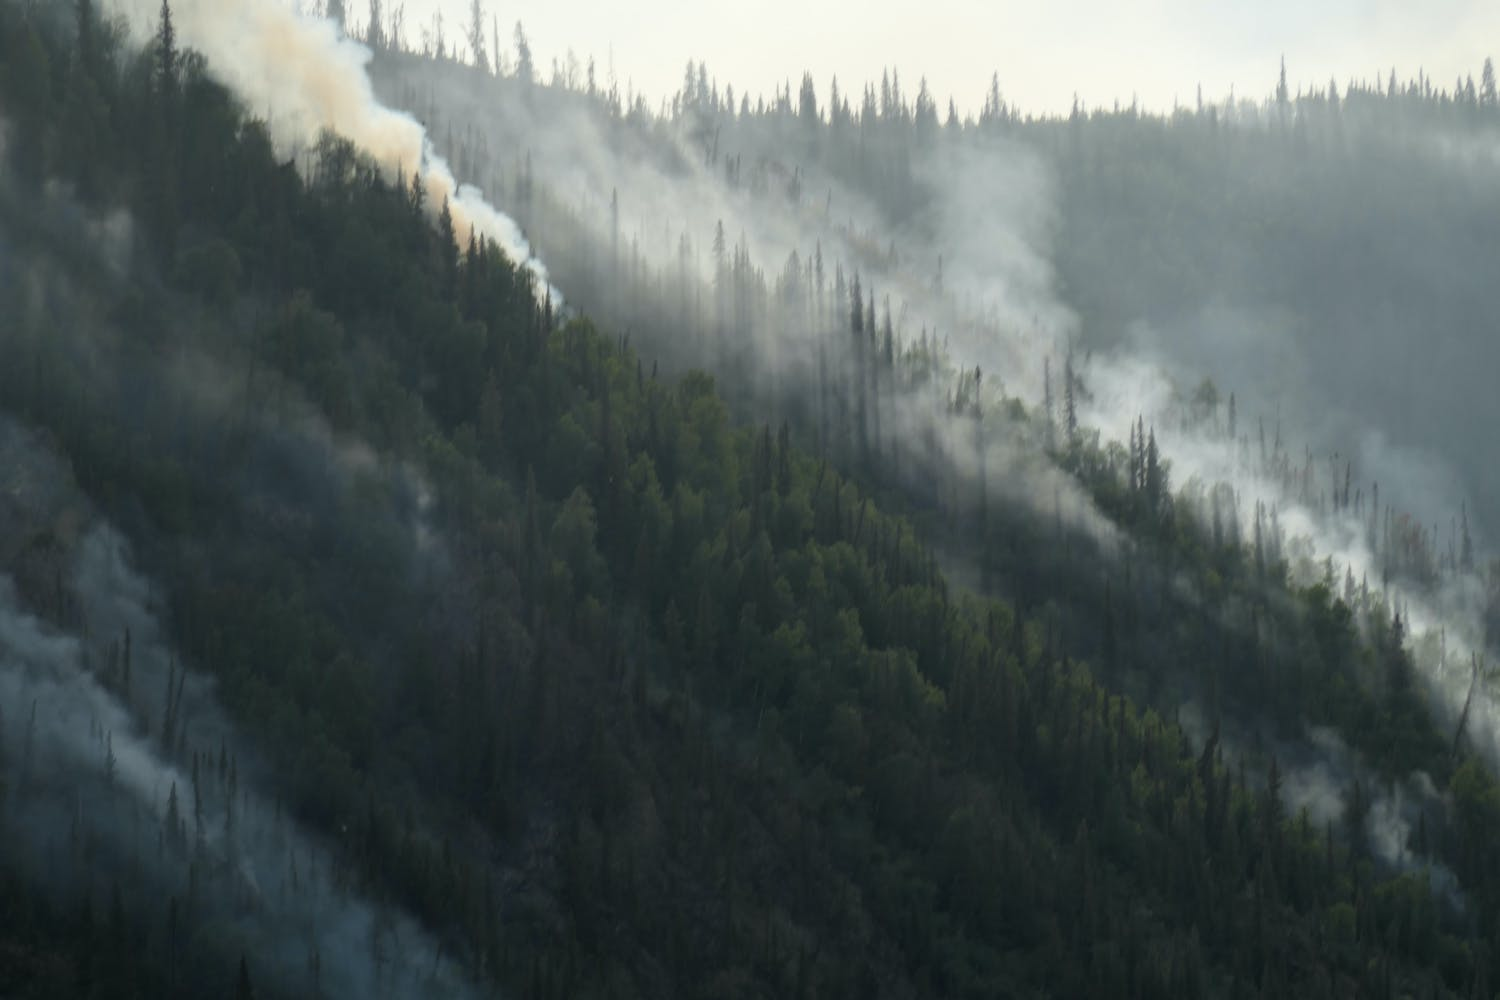 Wildfires caused by recent lightning strikes